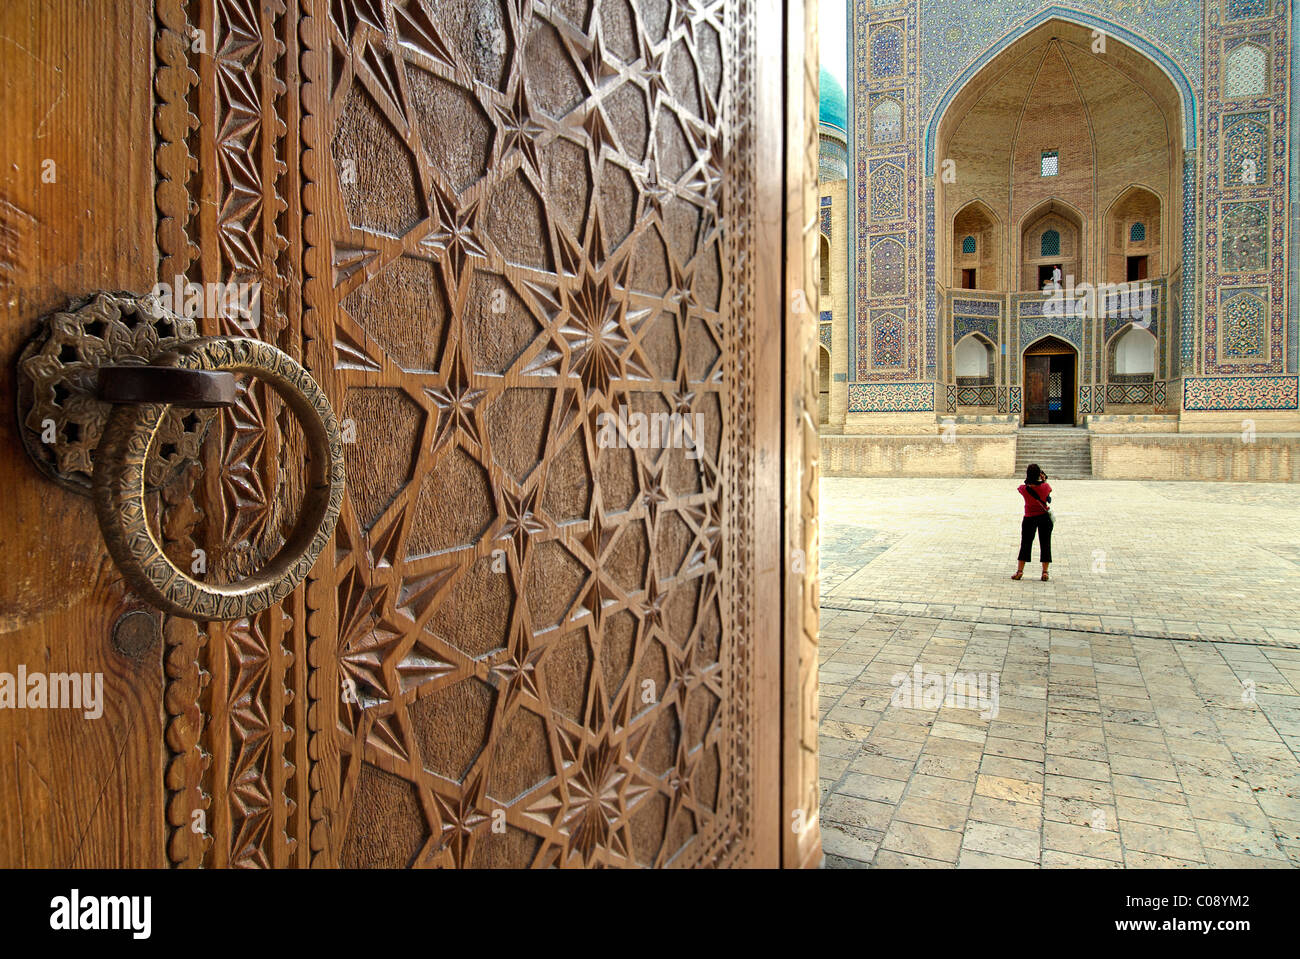 The Mir-i-arab Madrassah seen beyond the ornate carved doors of the Kalon Mosque Bukhara Uzbekistan & The Mir-i-arab Madrassah seen beyond the ornate carved doors of the ...